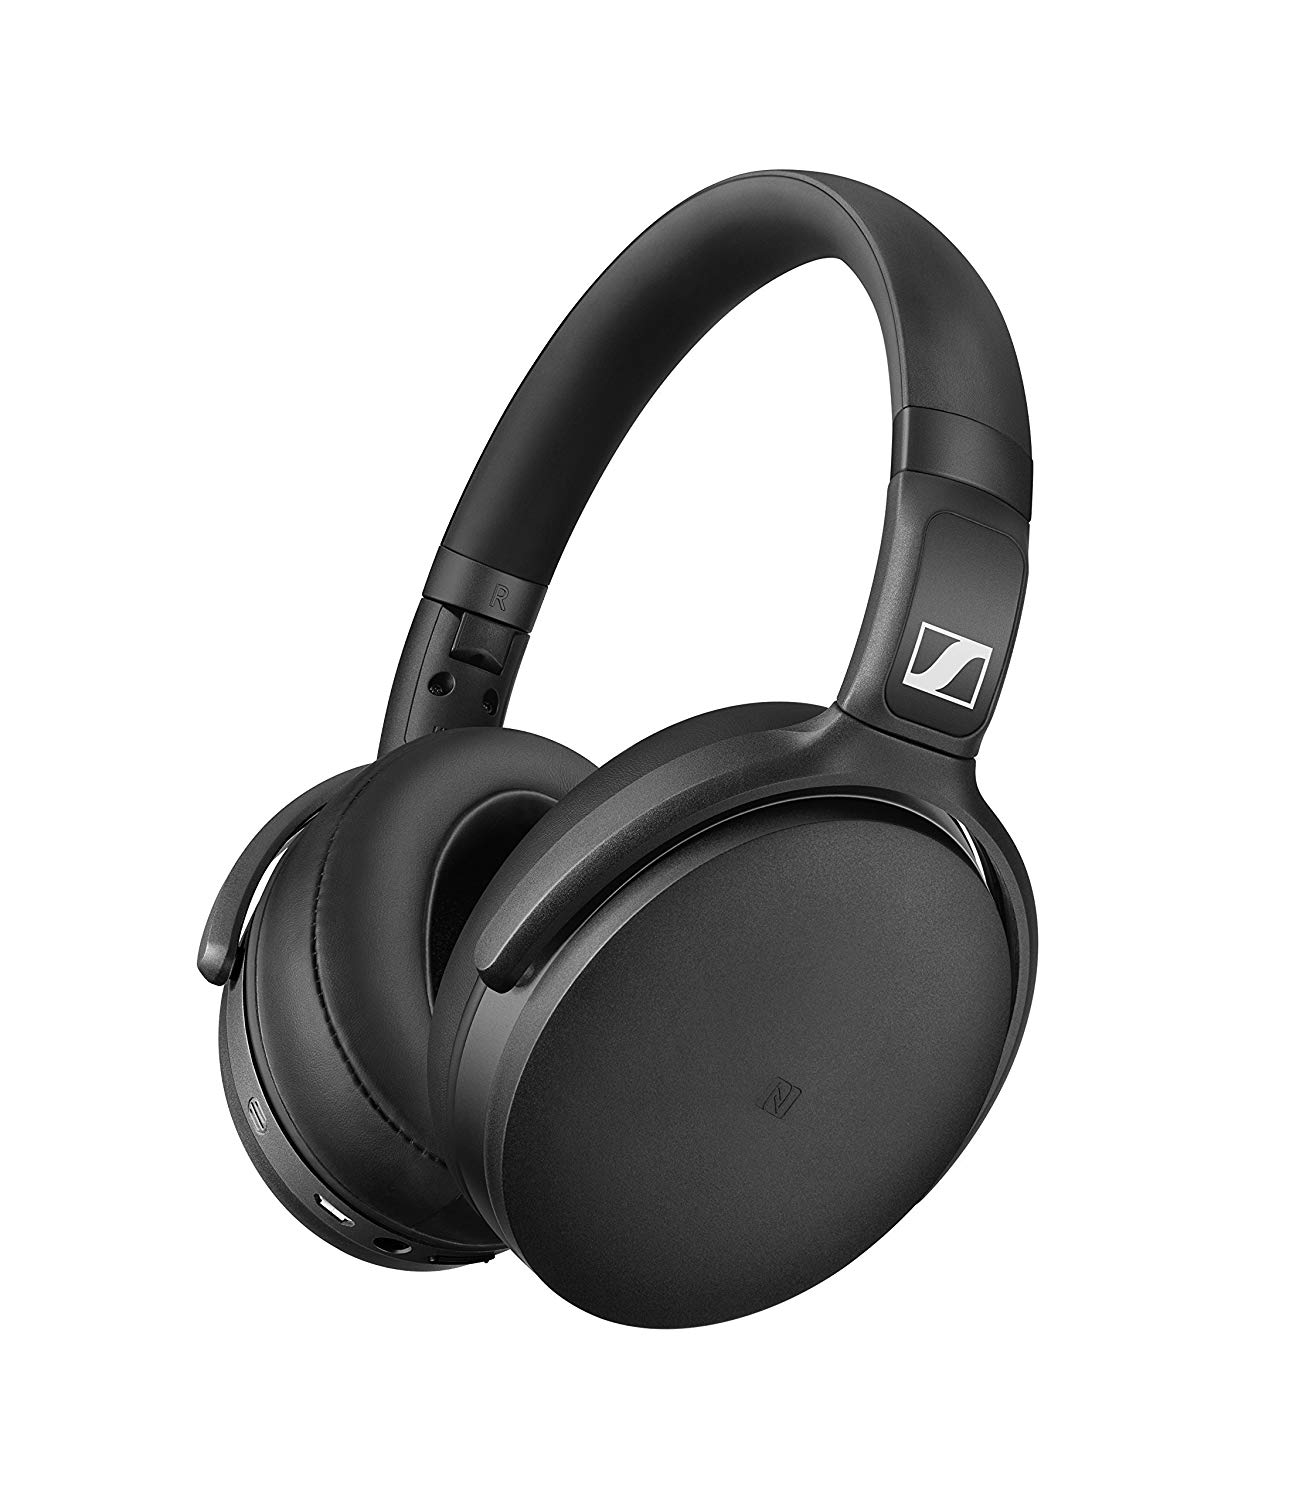 Sennheiser HD 4.50 Special Edition, over Ear Wireless Headphone for £89.99